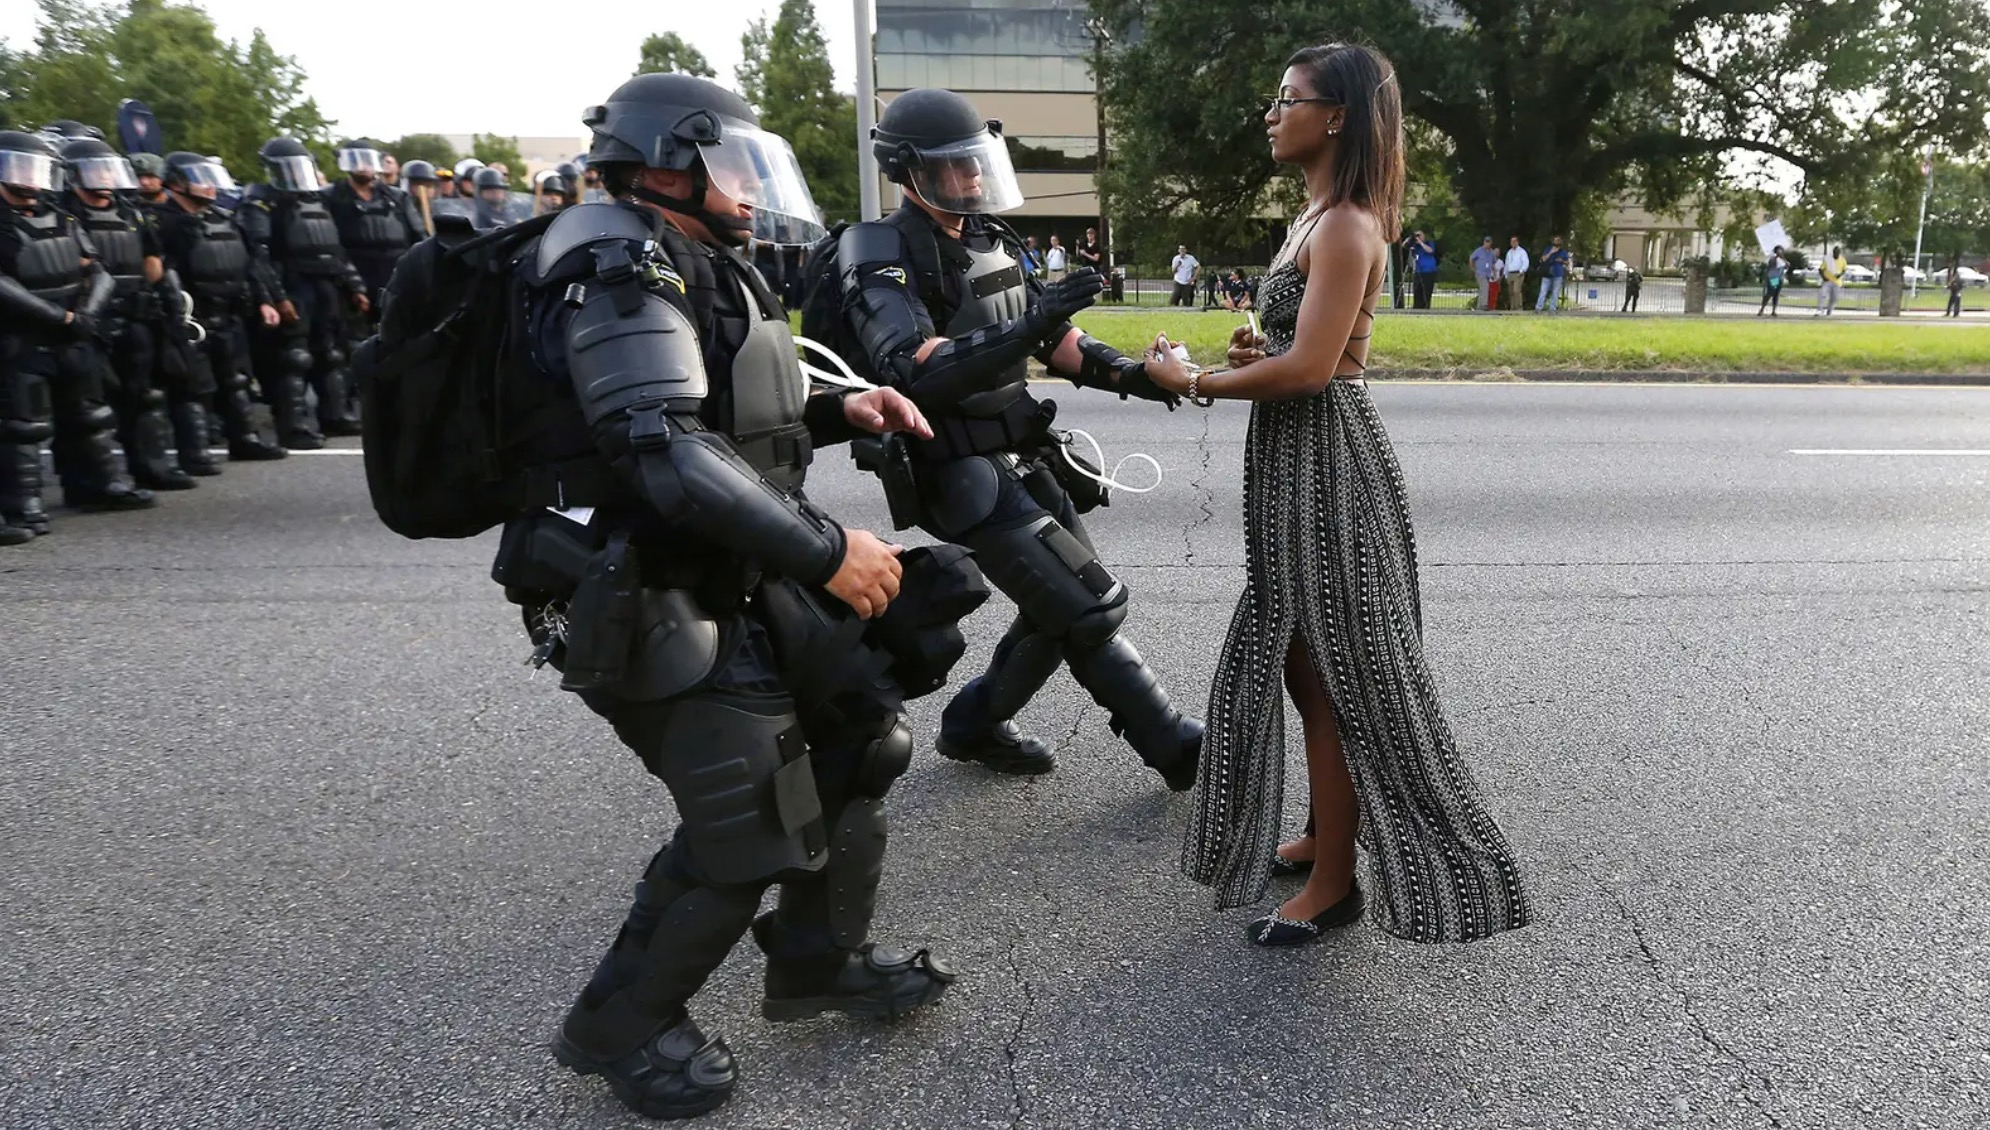 76 Of The Most Powerful Photos Of The Decade